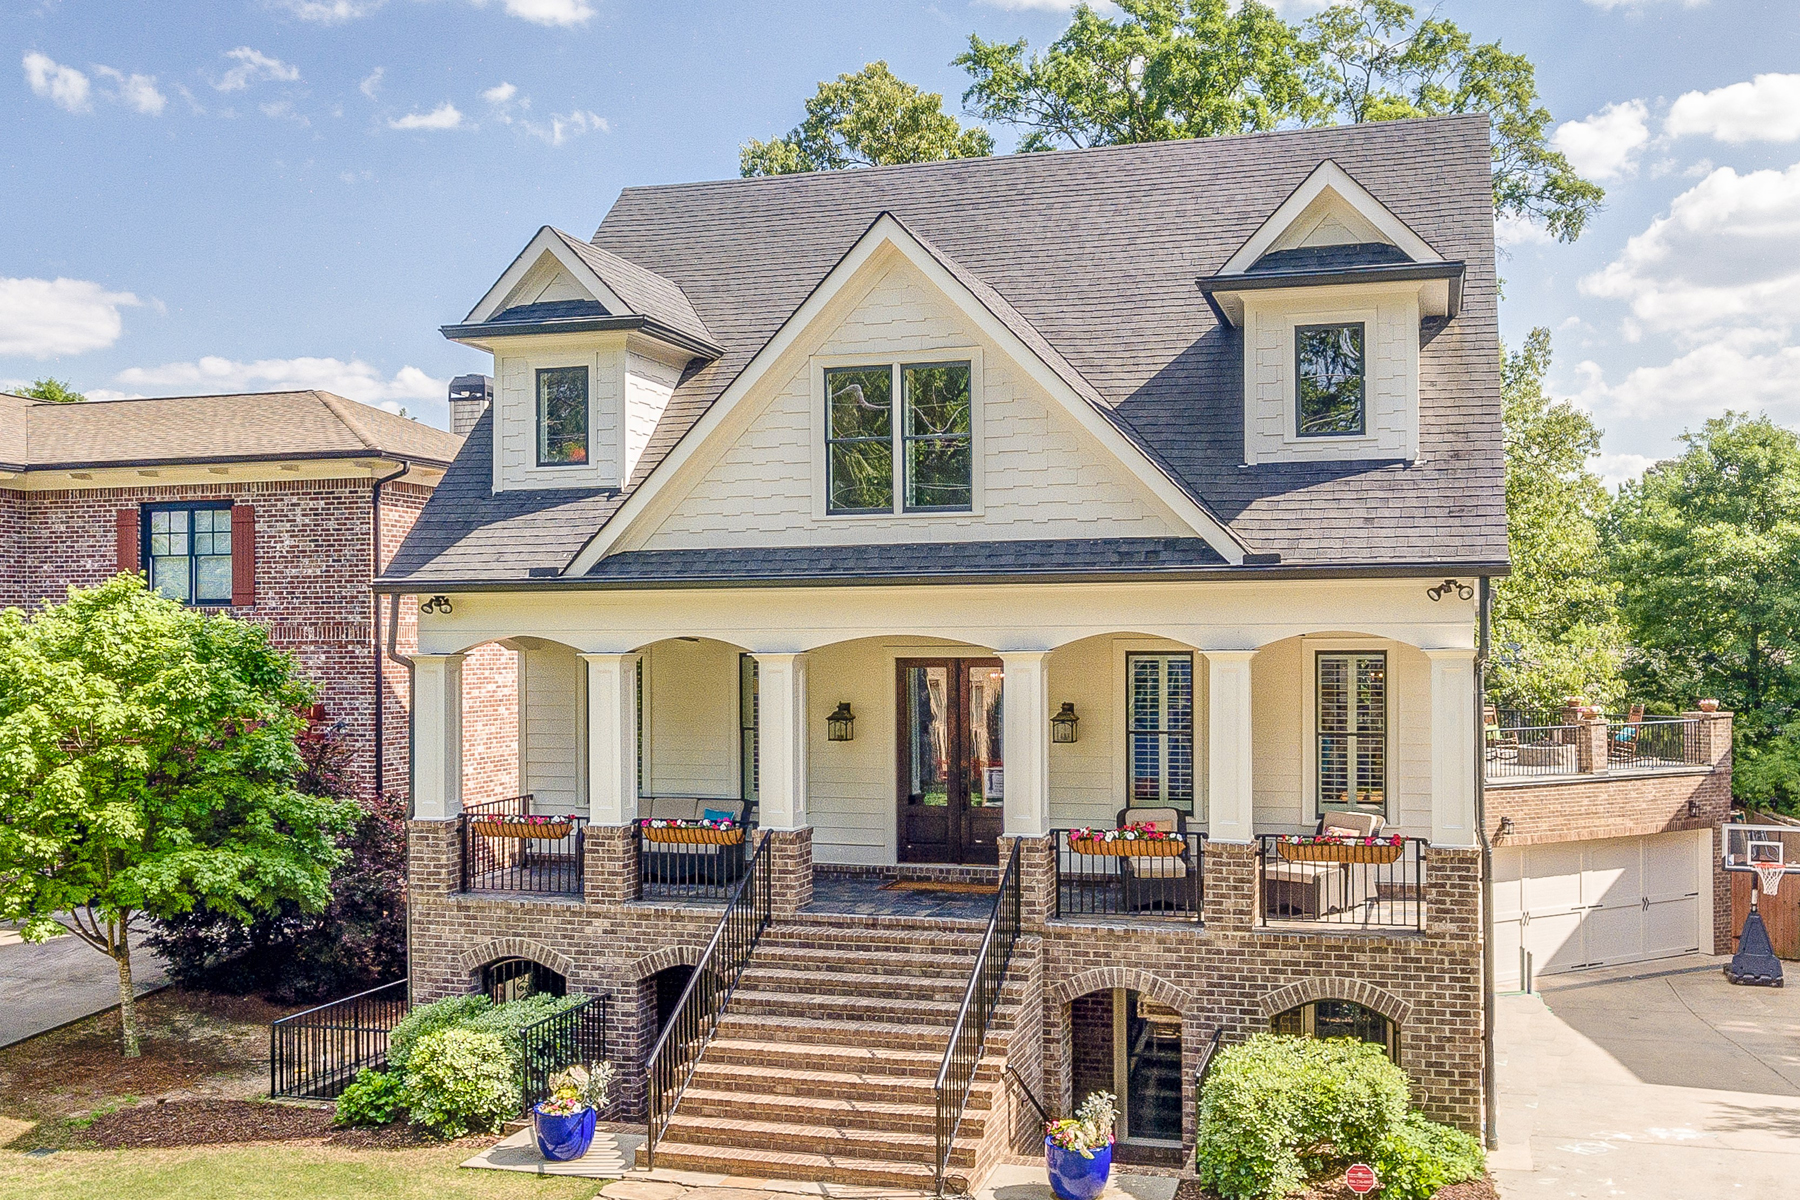 Single Family Home for Sale at Beautiful Brookhaven Home 1393 Noel Drive Brookhaven, Georgia 30319 United States